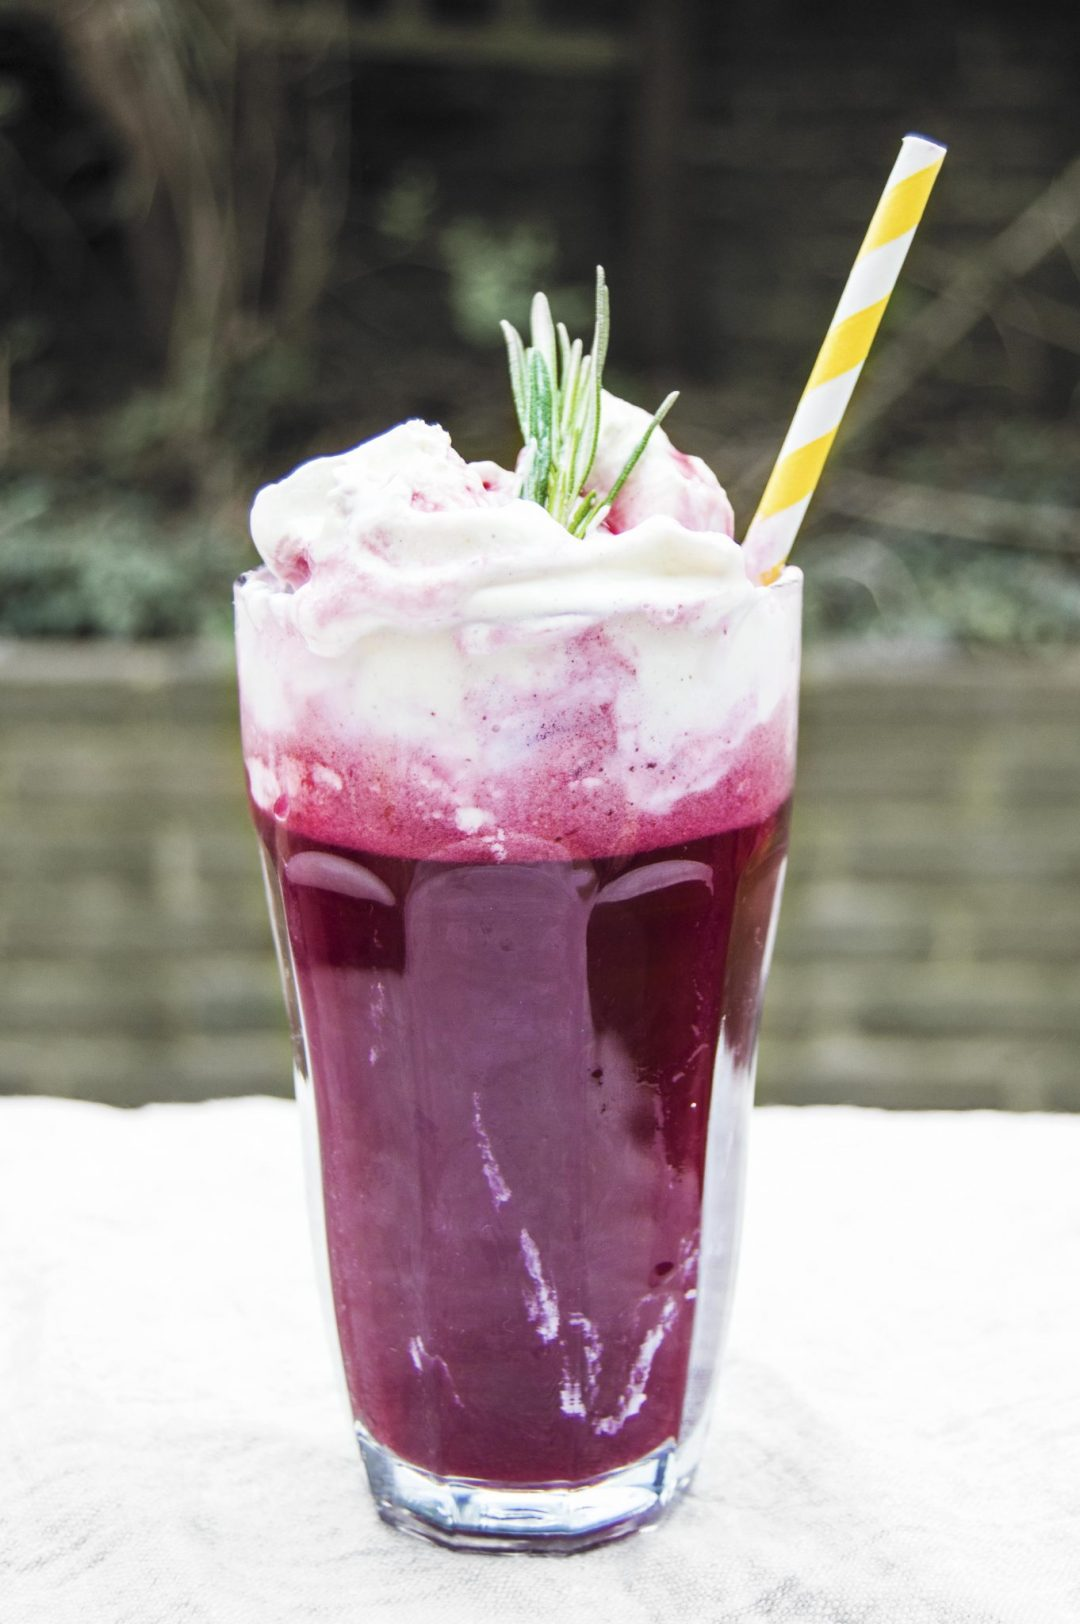 Vegan Blueberry Rosemary Lemonade Ice Cream Floats